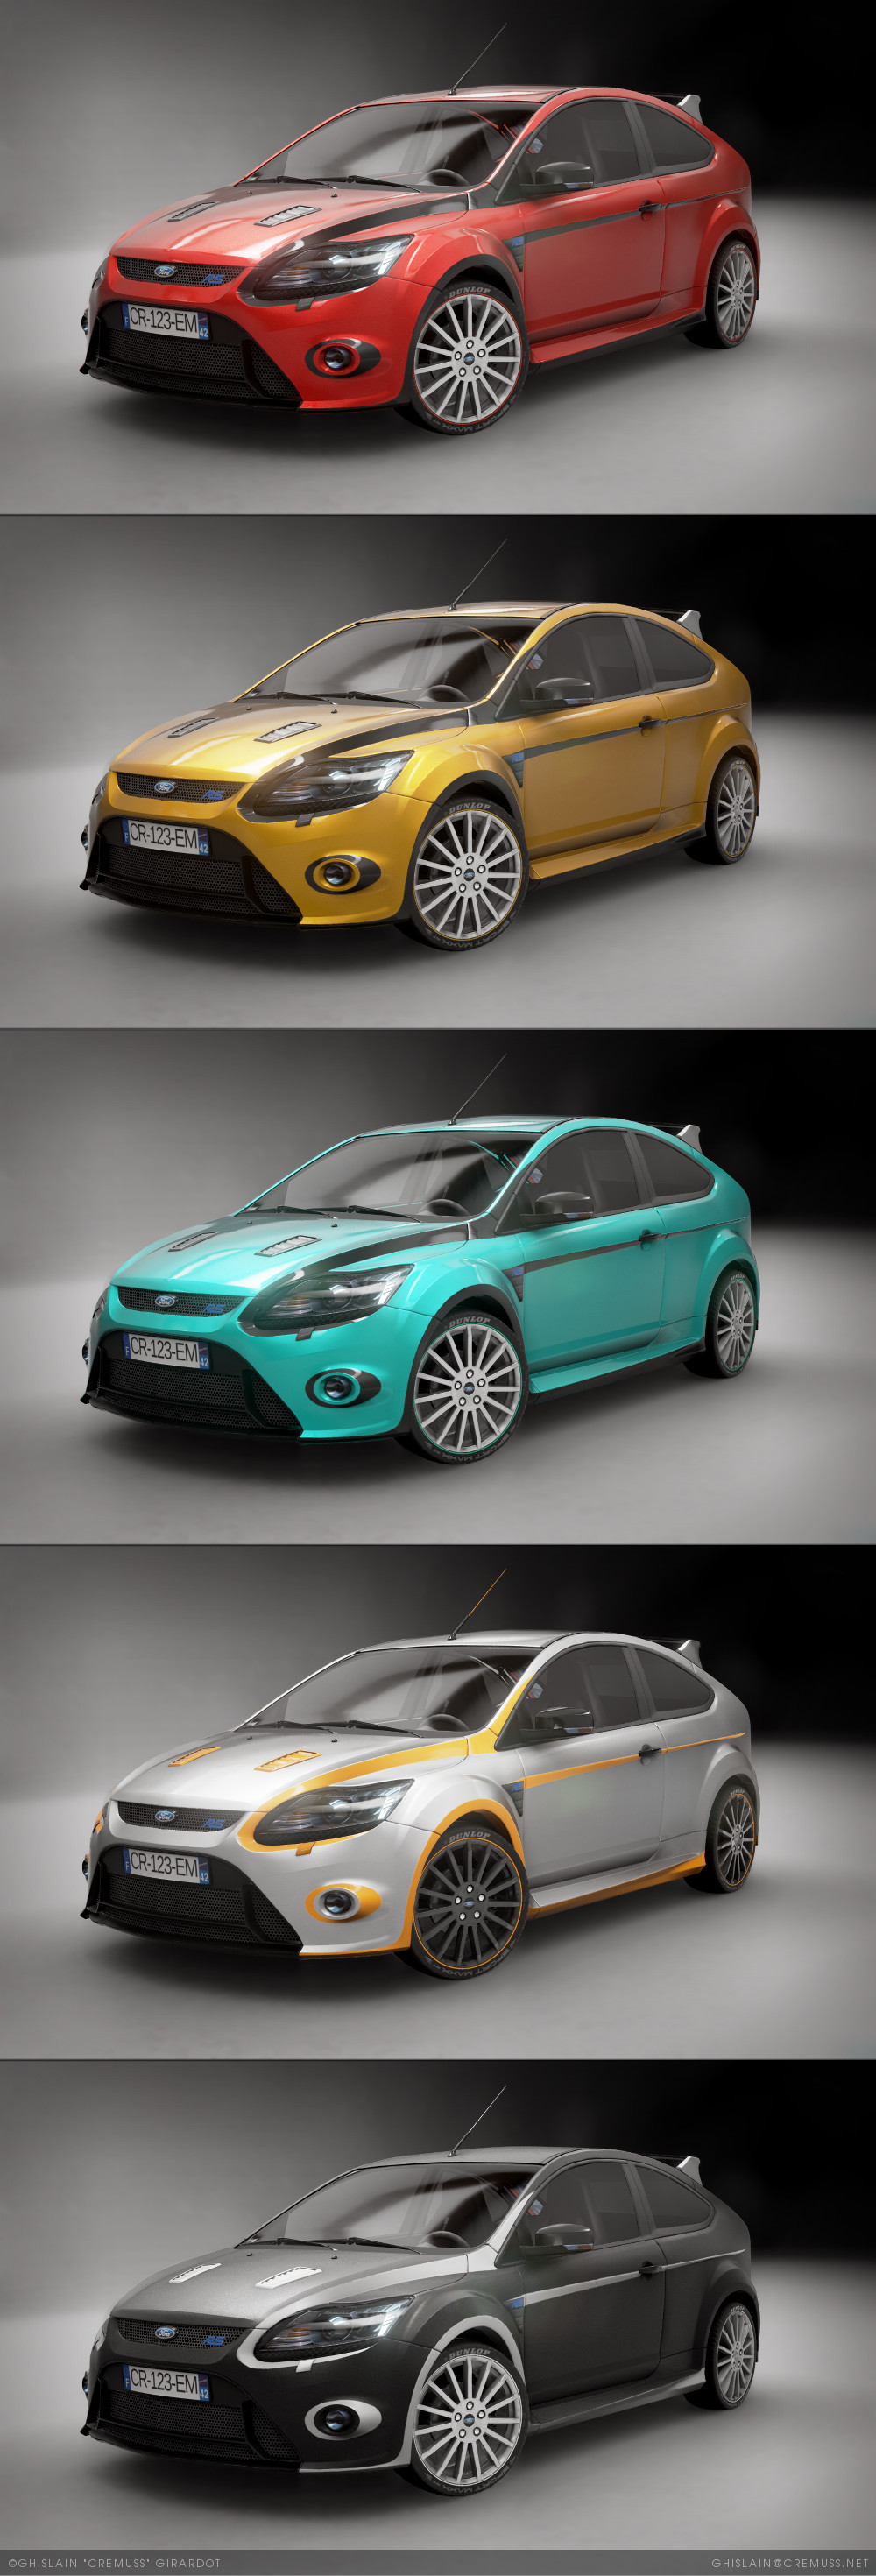 ArtStation - Low-poly Ford Focus RS500 - Unreal Engine 4